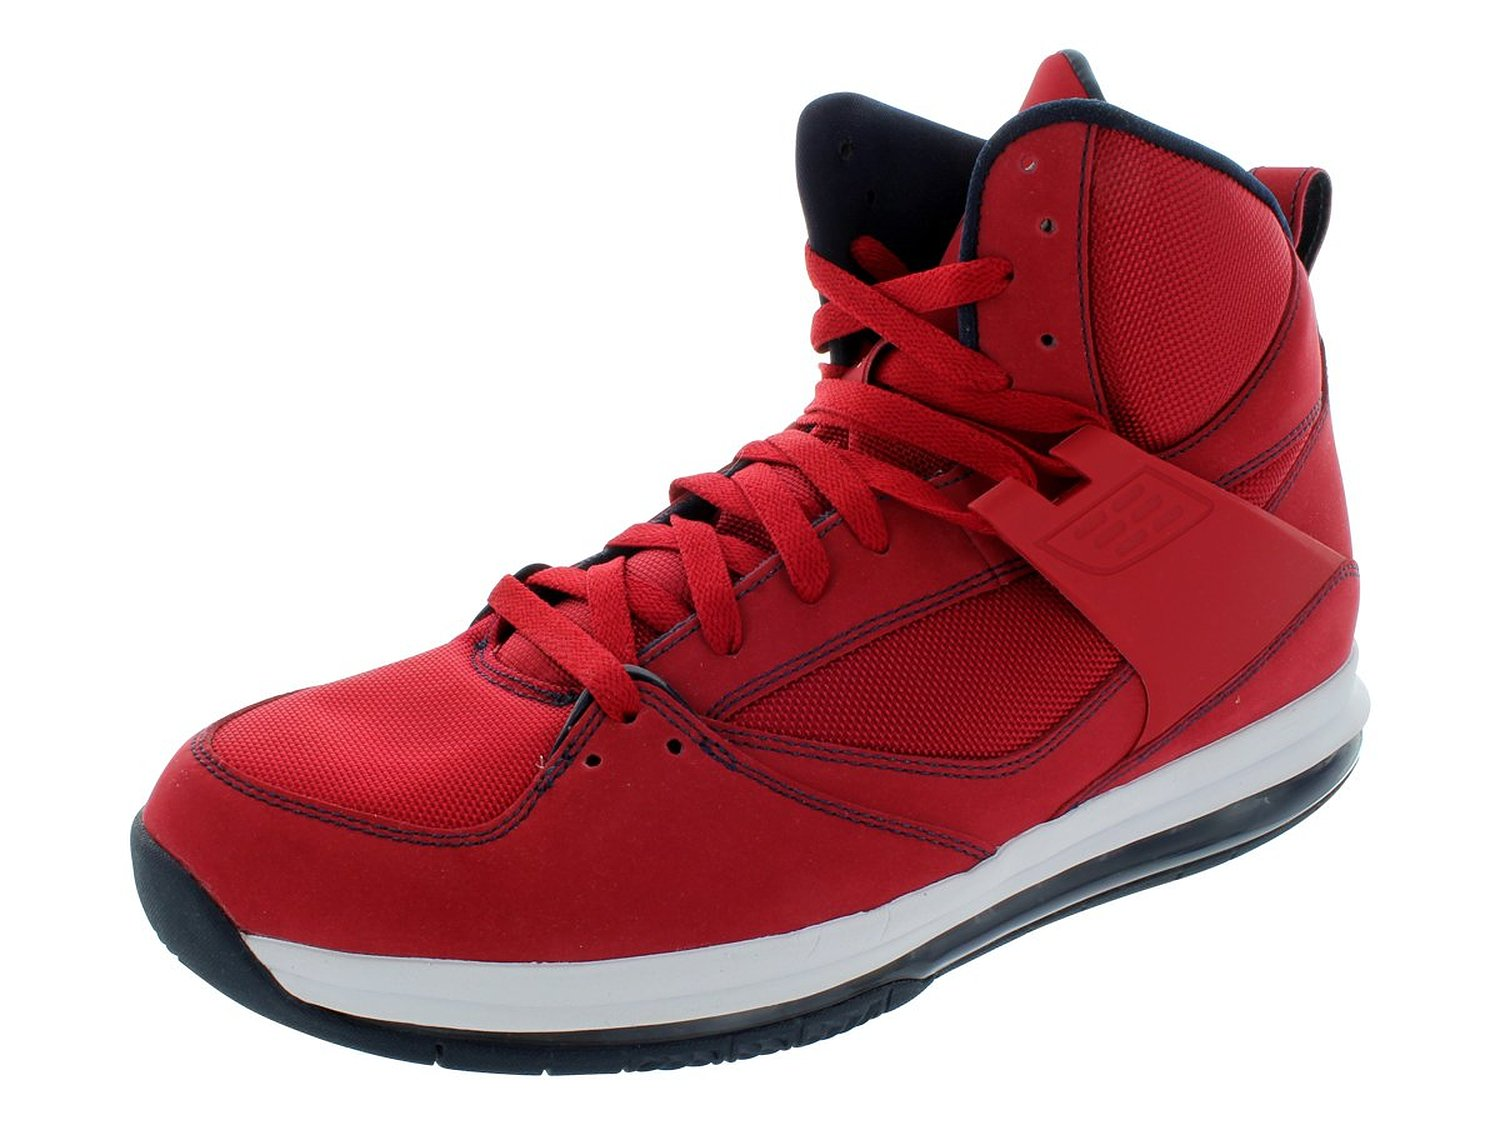 a9b5896d1ade Buy Nike Womens Flex Experience RN 5 Running Shoe in Cheap Price on ...